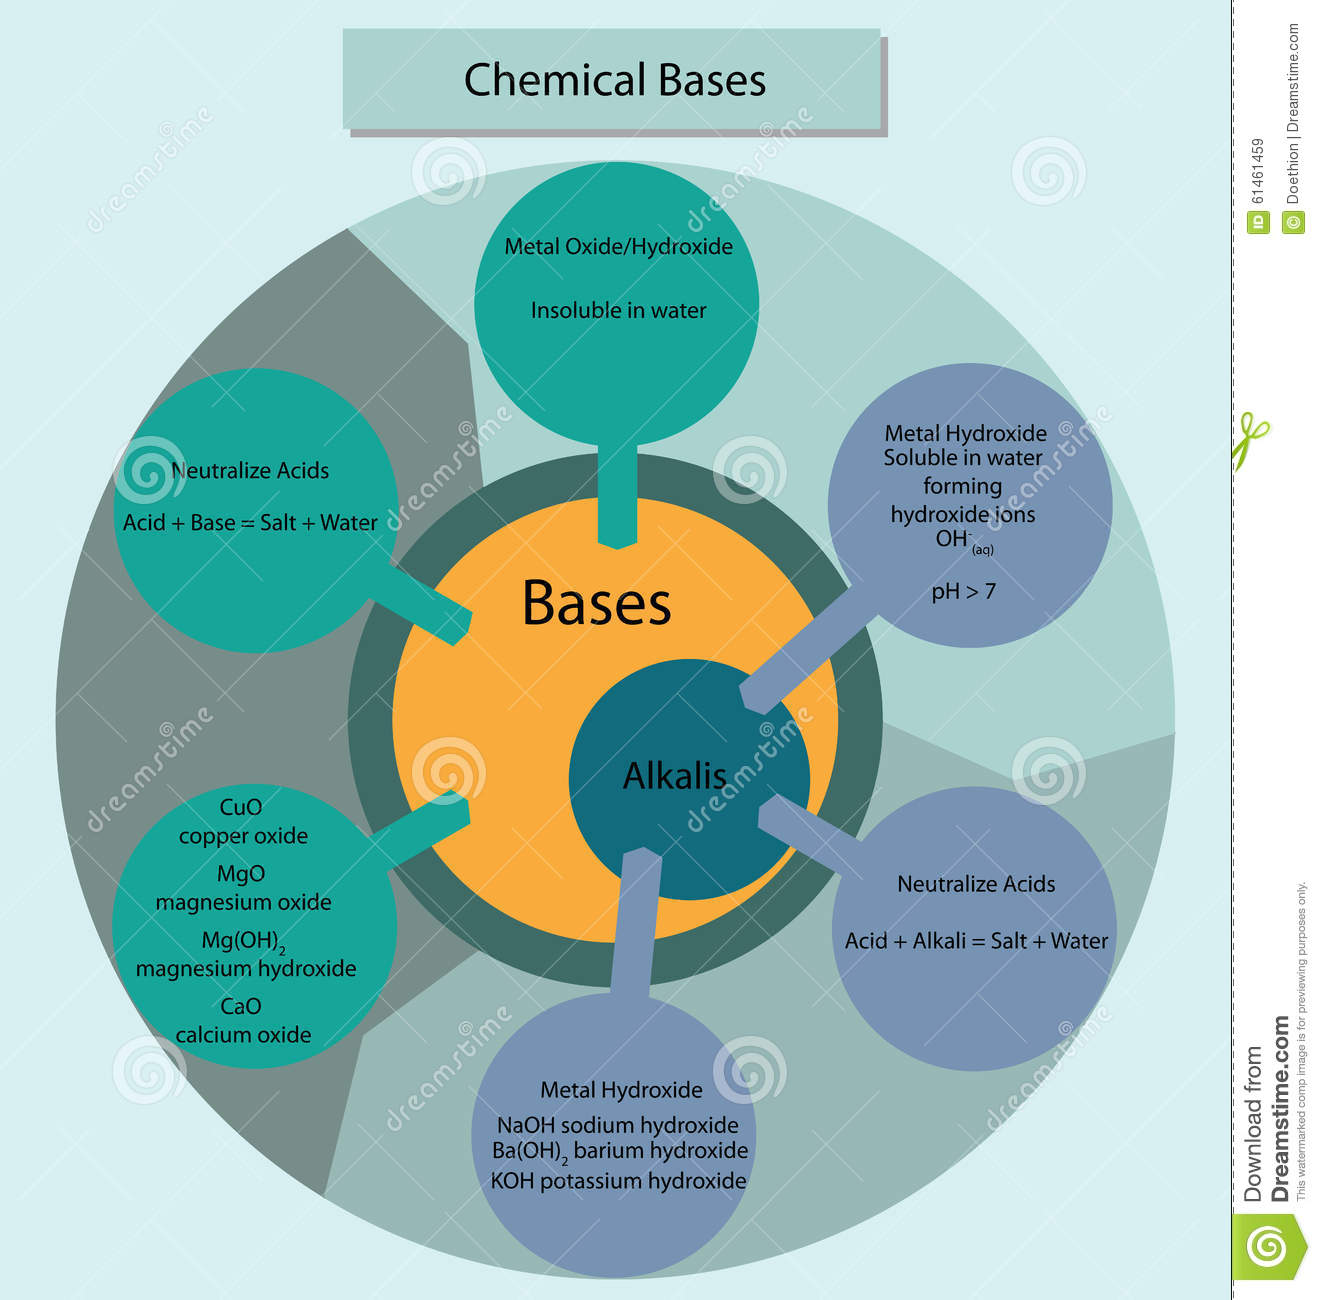 Chemical Bases And Alkalis Summarisied In Diagram Form